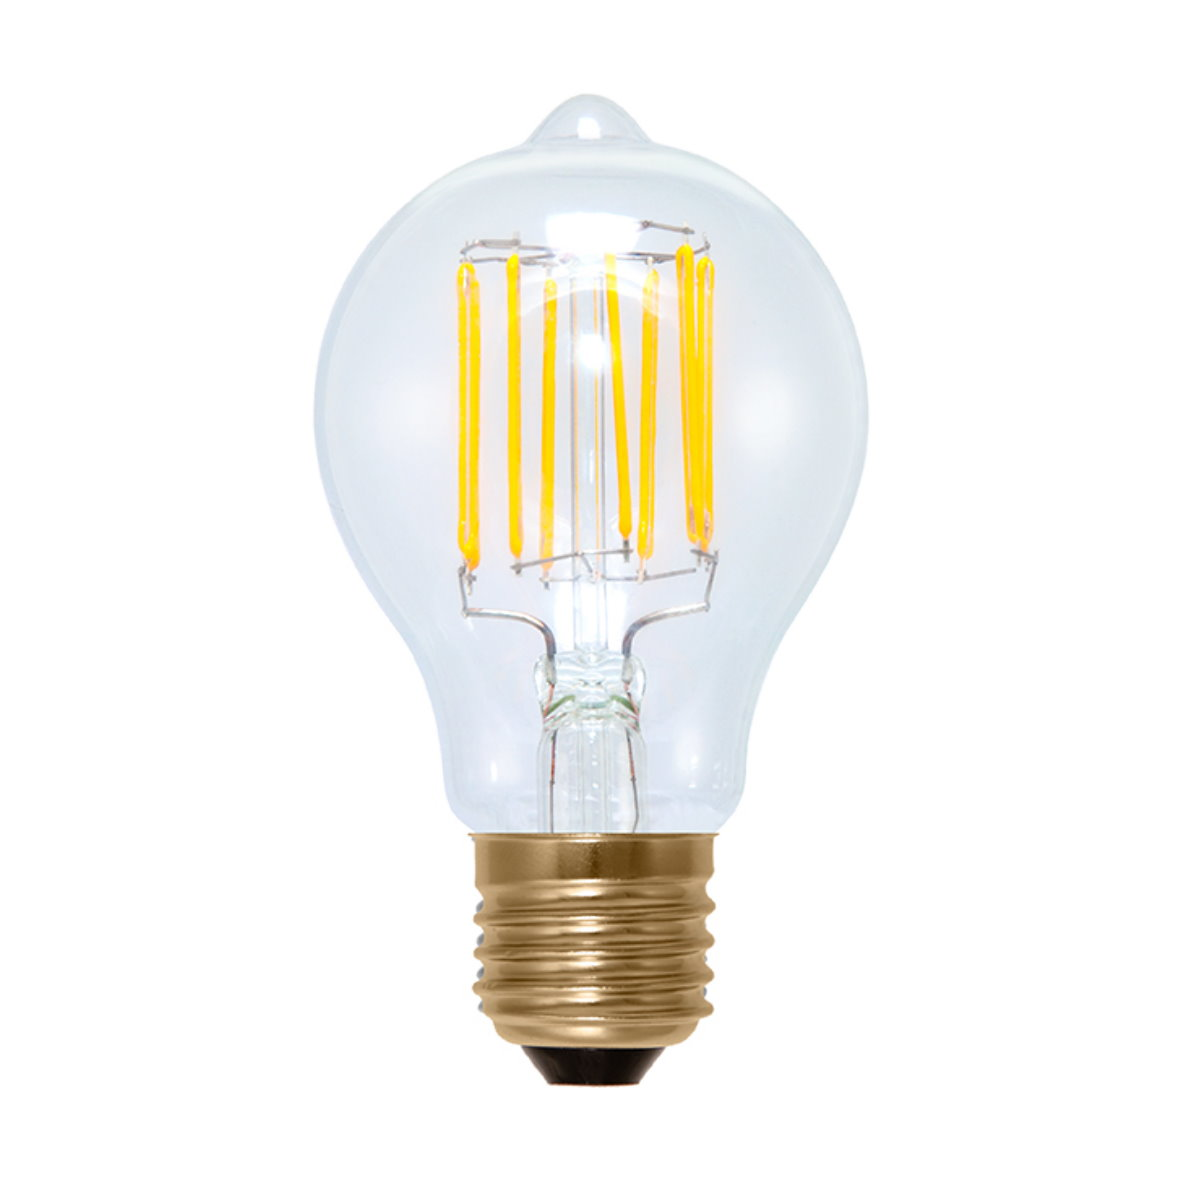 segula cob del ampoules filament edison variateur dimmable ampoule bulb candle ebay. Black Bedroom Furniture Sets. Home Design Ideas